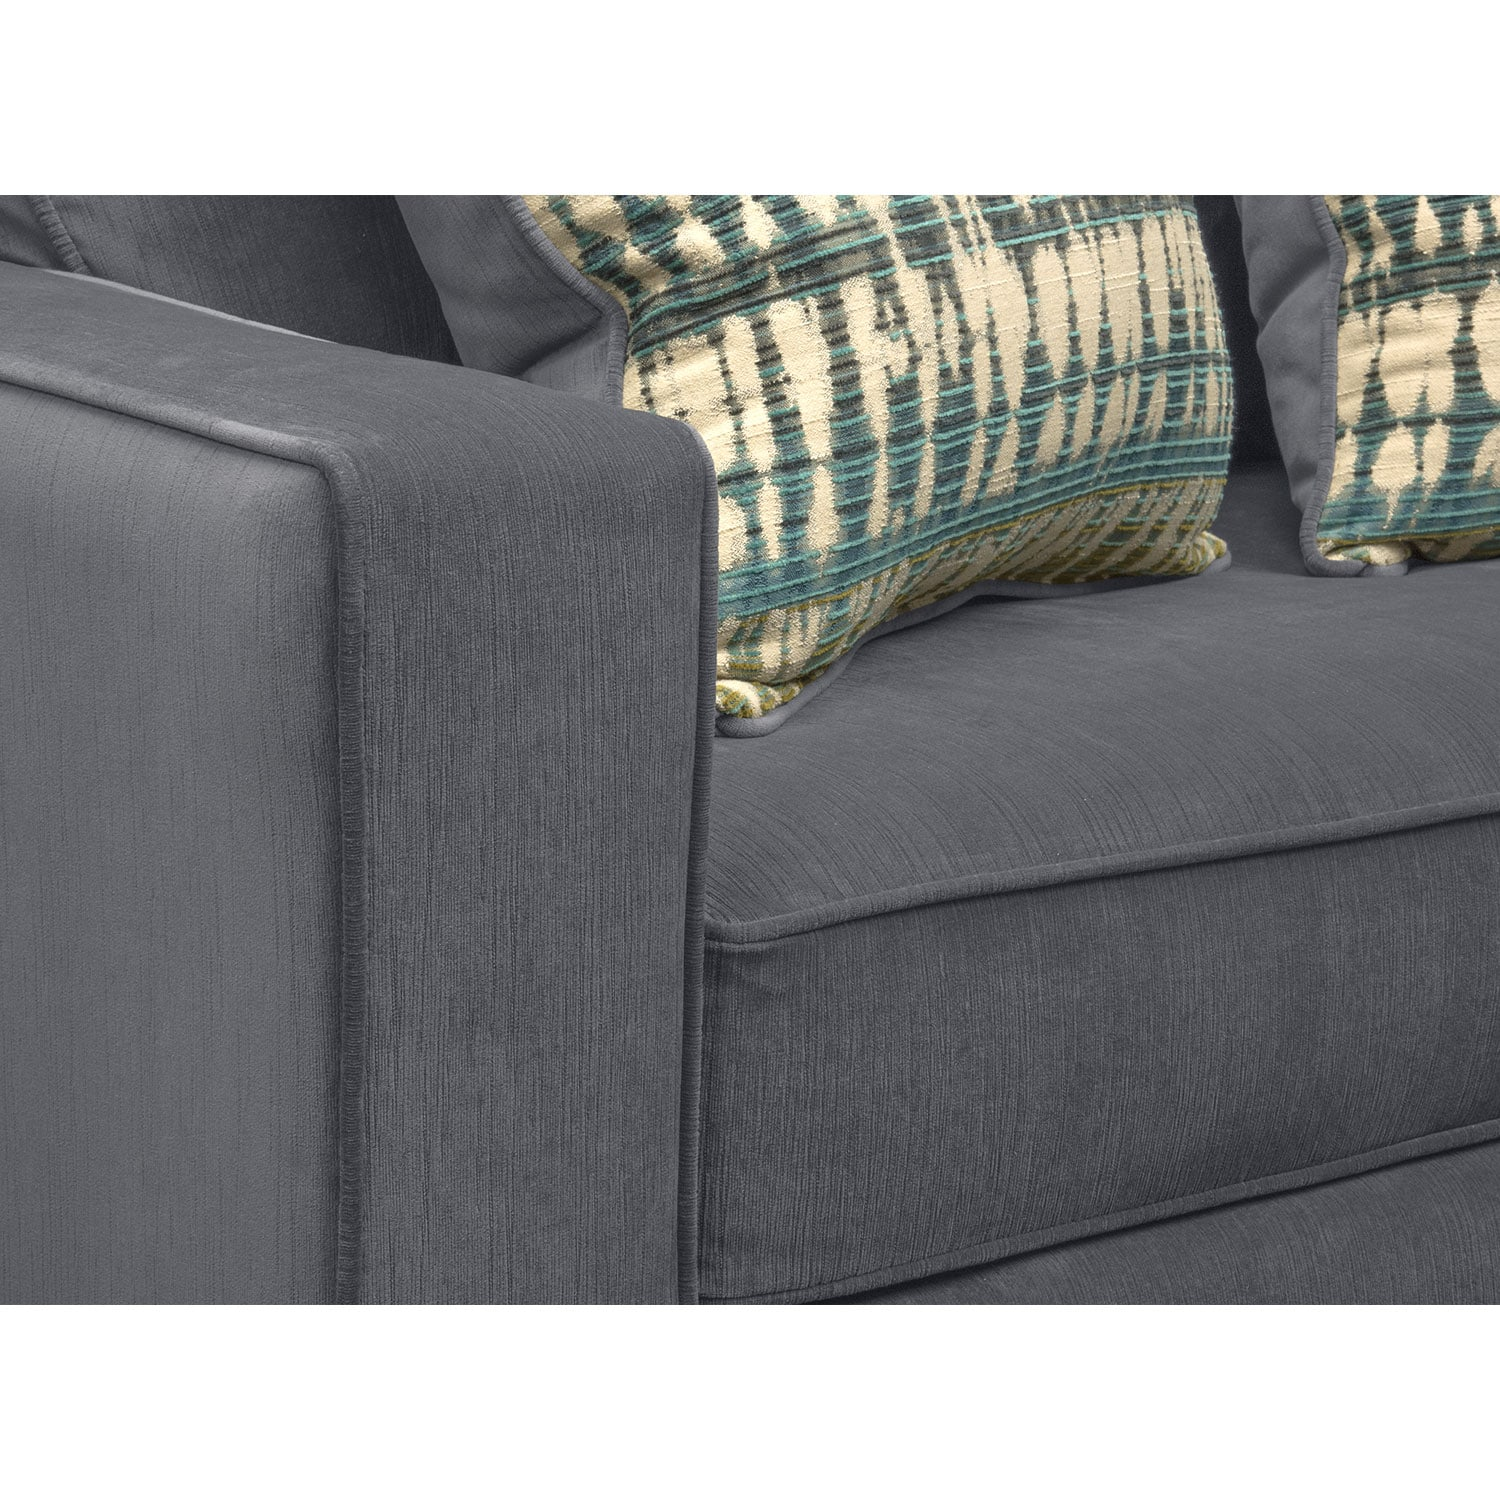 Bryden Queen Memory Foam Sleeper Sofa Slate